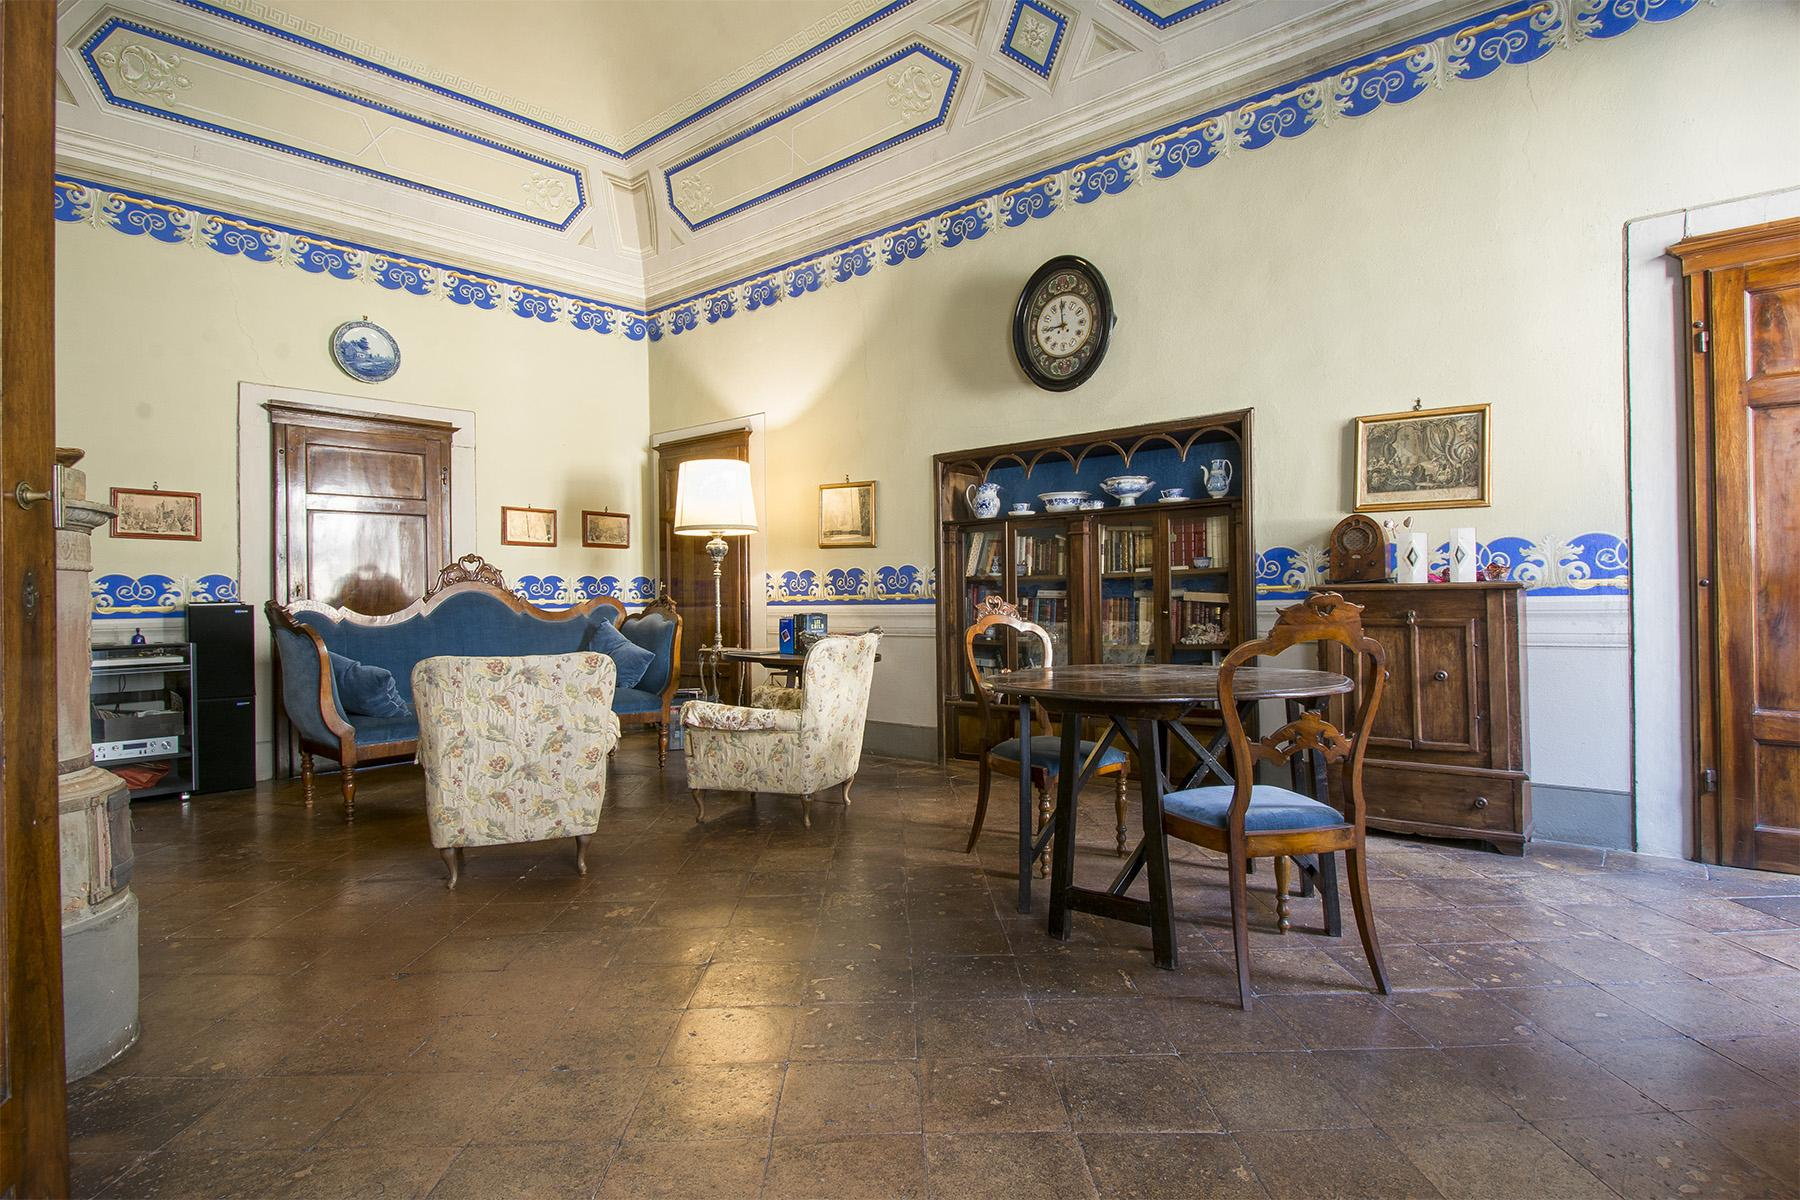 17th-century noble palace in the heart of Volterra - 12